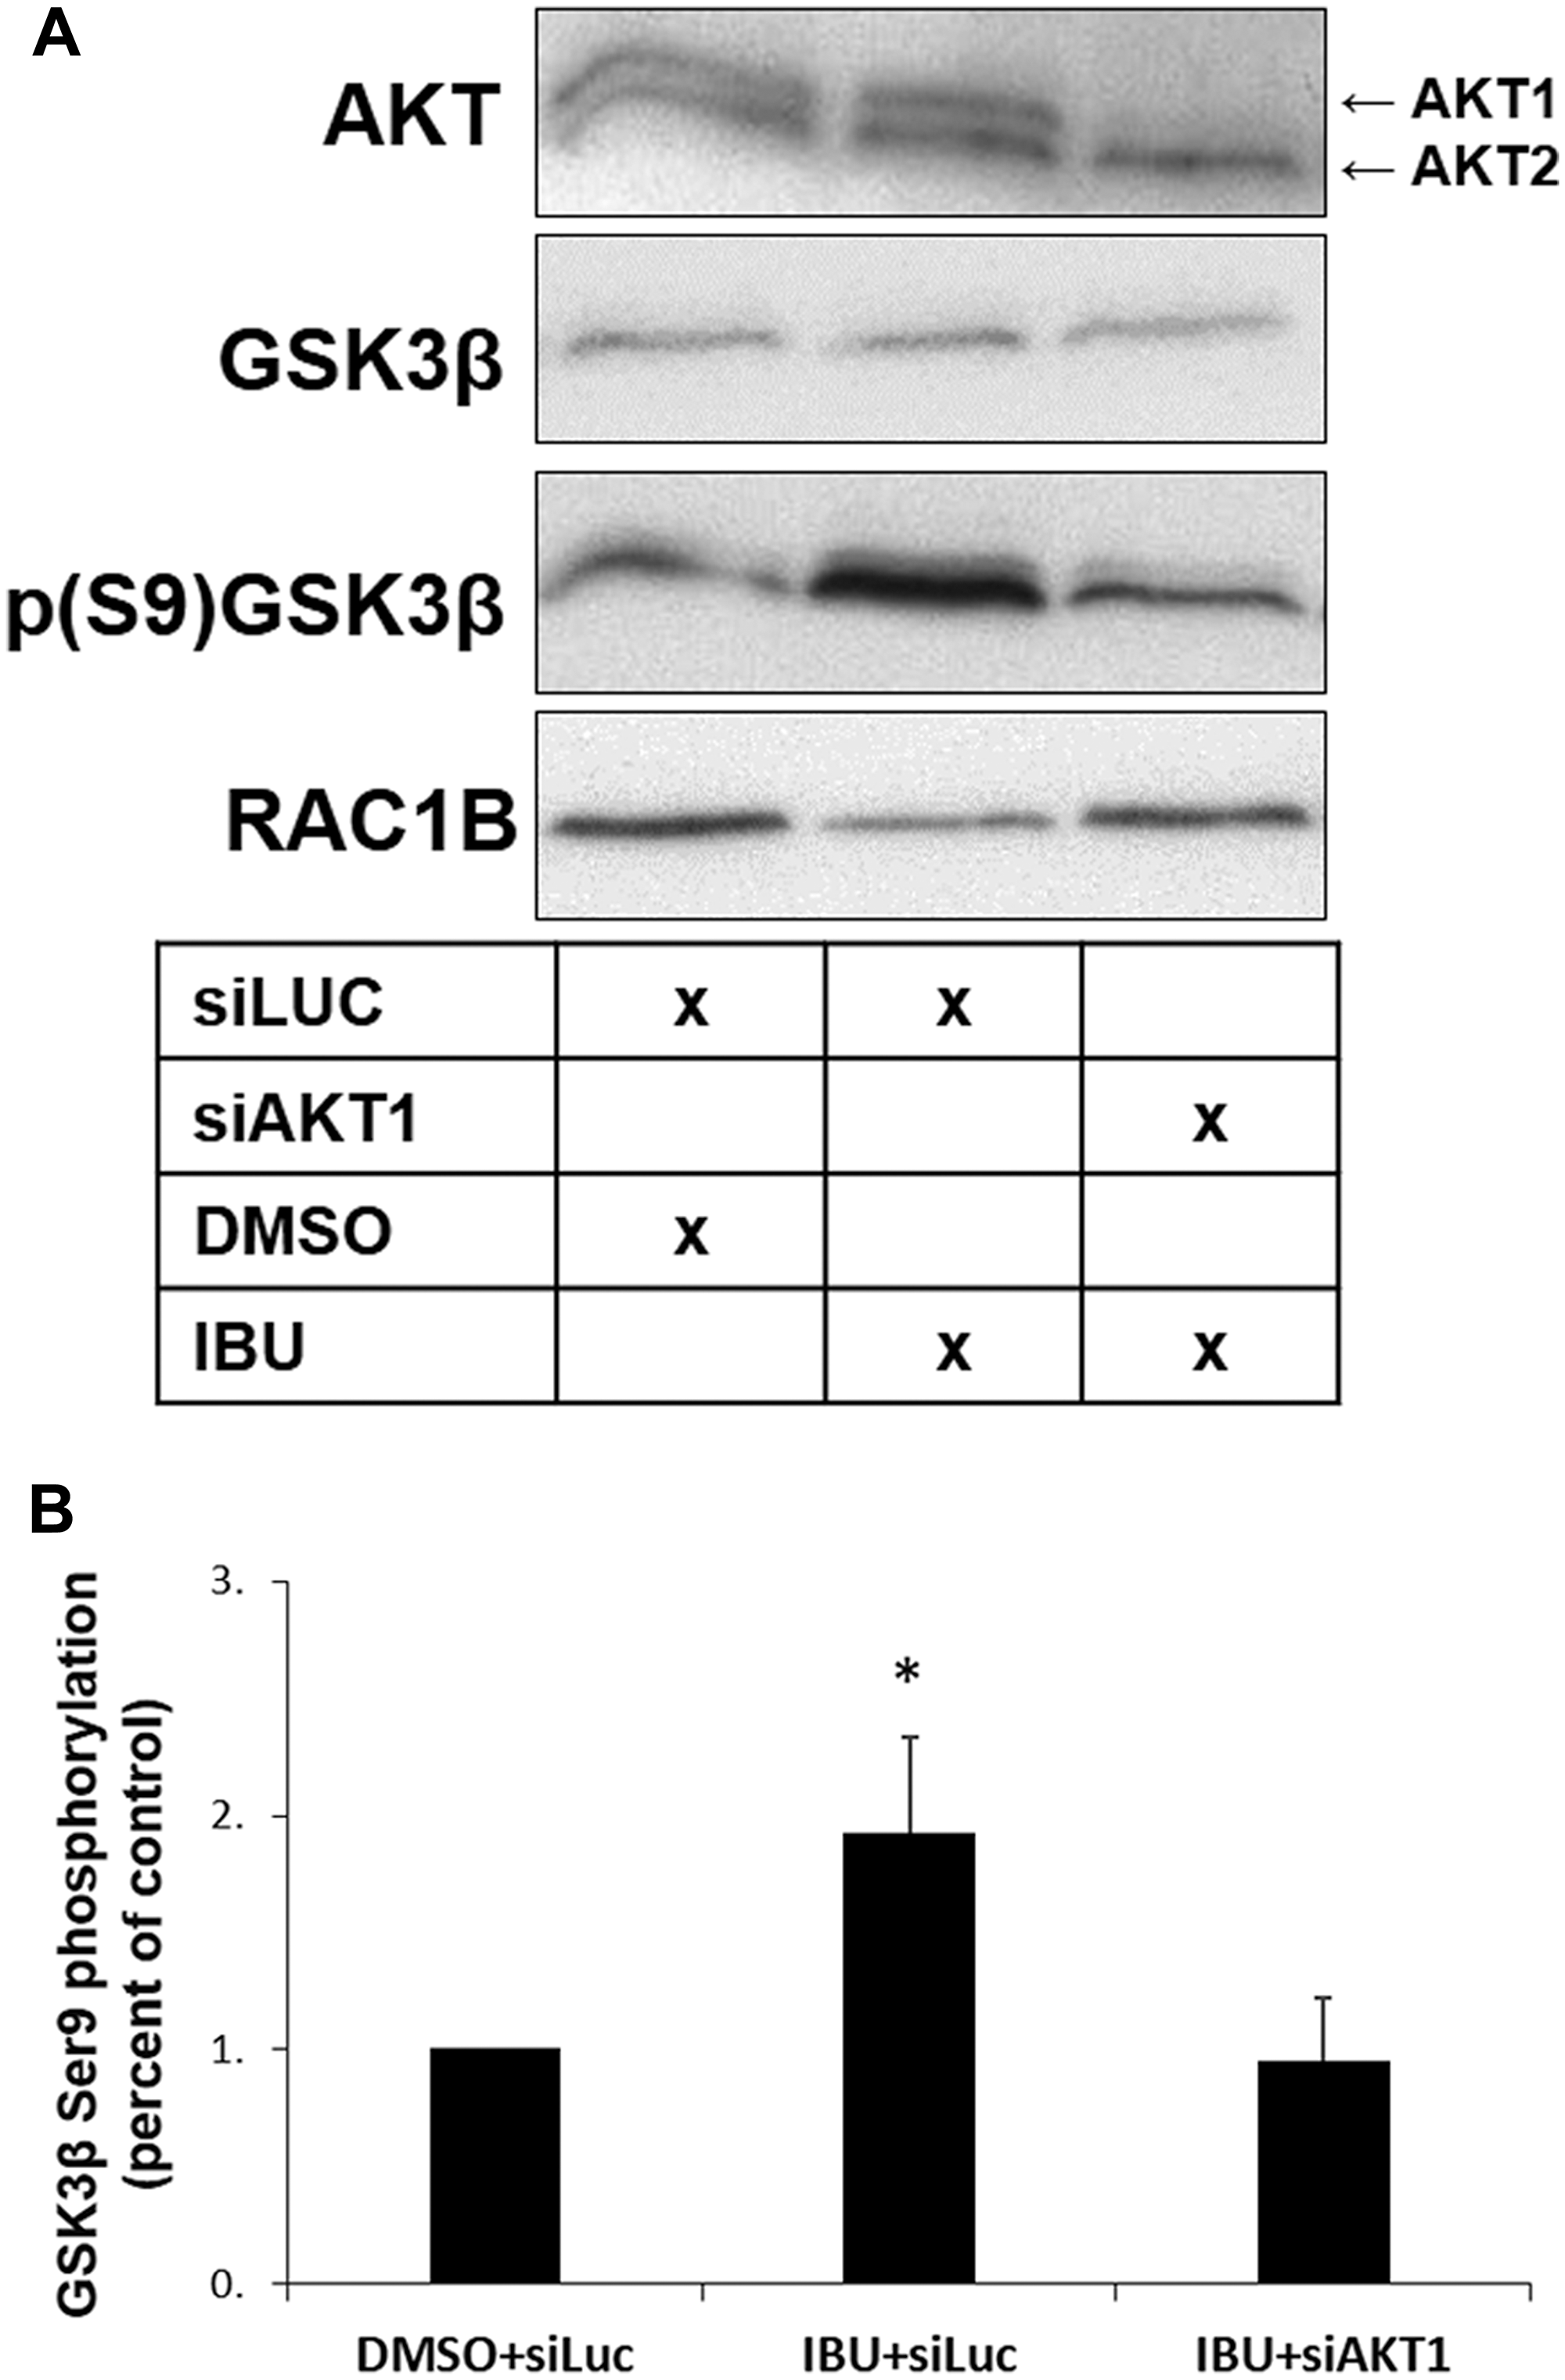 AKT1 is required for GSK3β S9 phosphorylation in ibuprofen-treated cells.